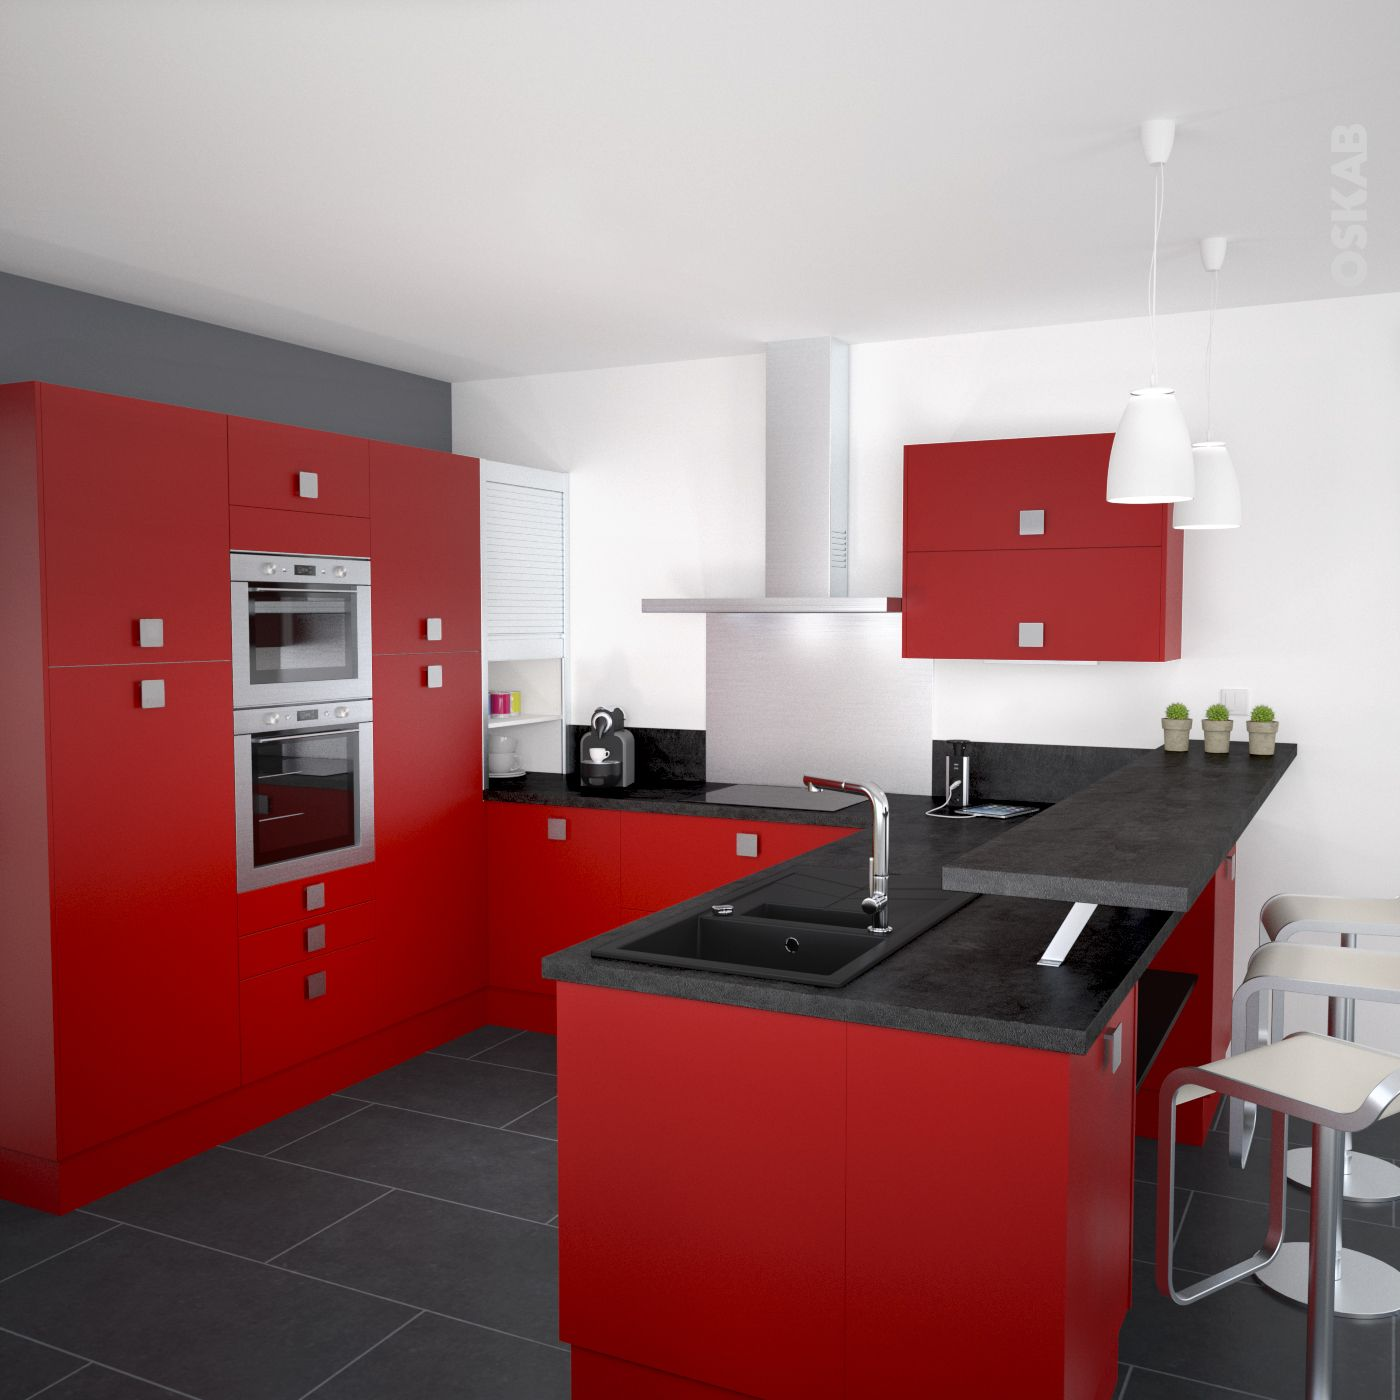 cuisine ouverte contemporaine couleur rouge avec finition mate implantation en u avec plan de. Black Bedroom Furniture Sets. Home Design Ideas